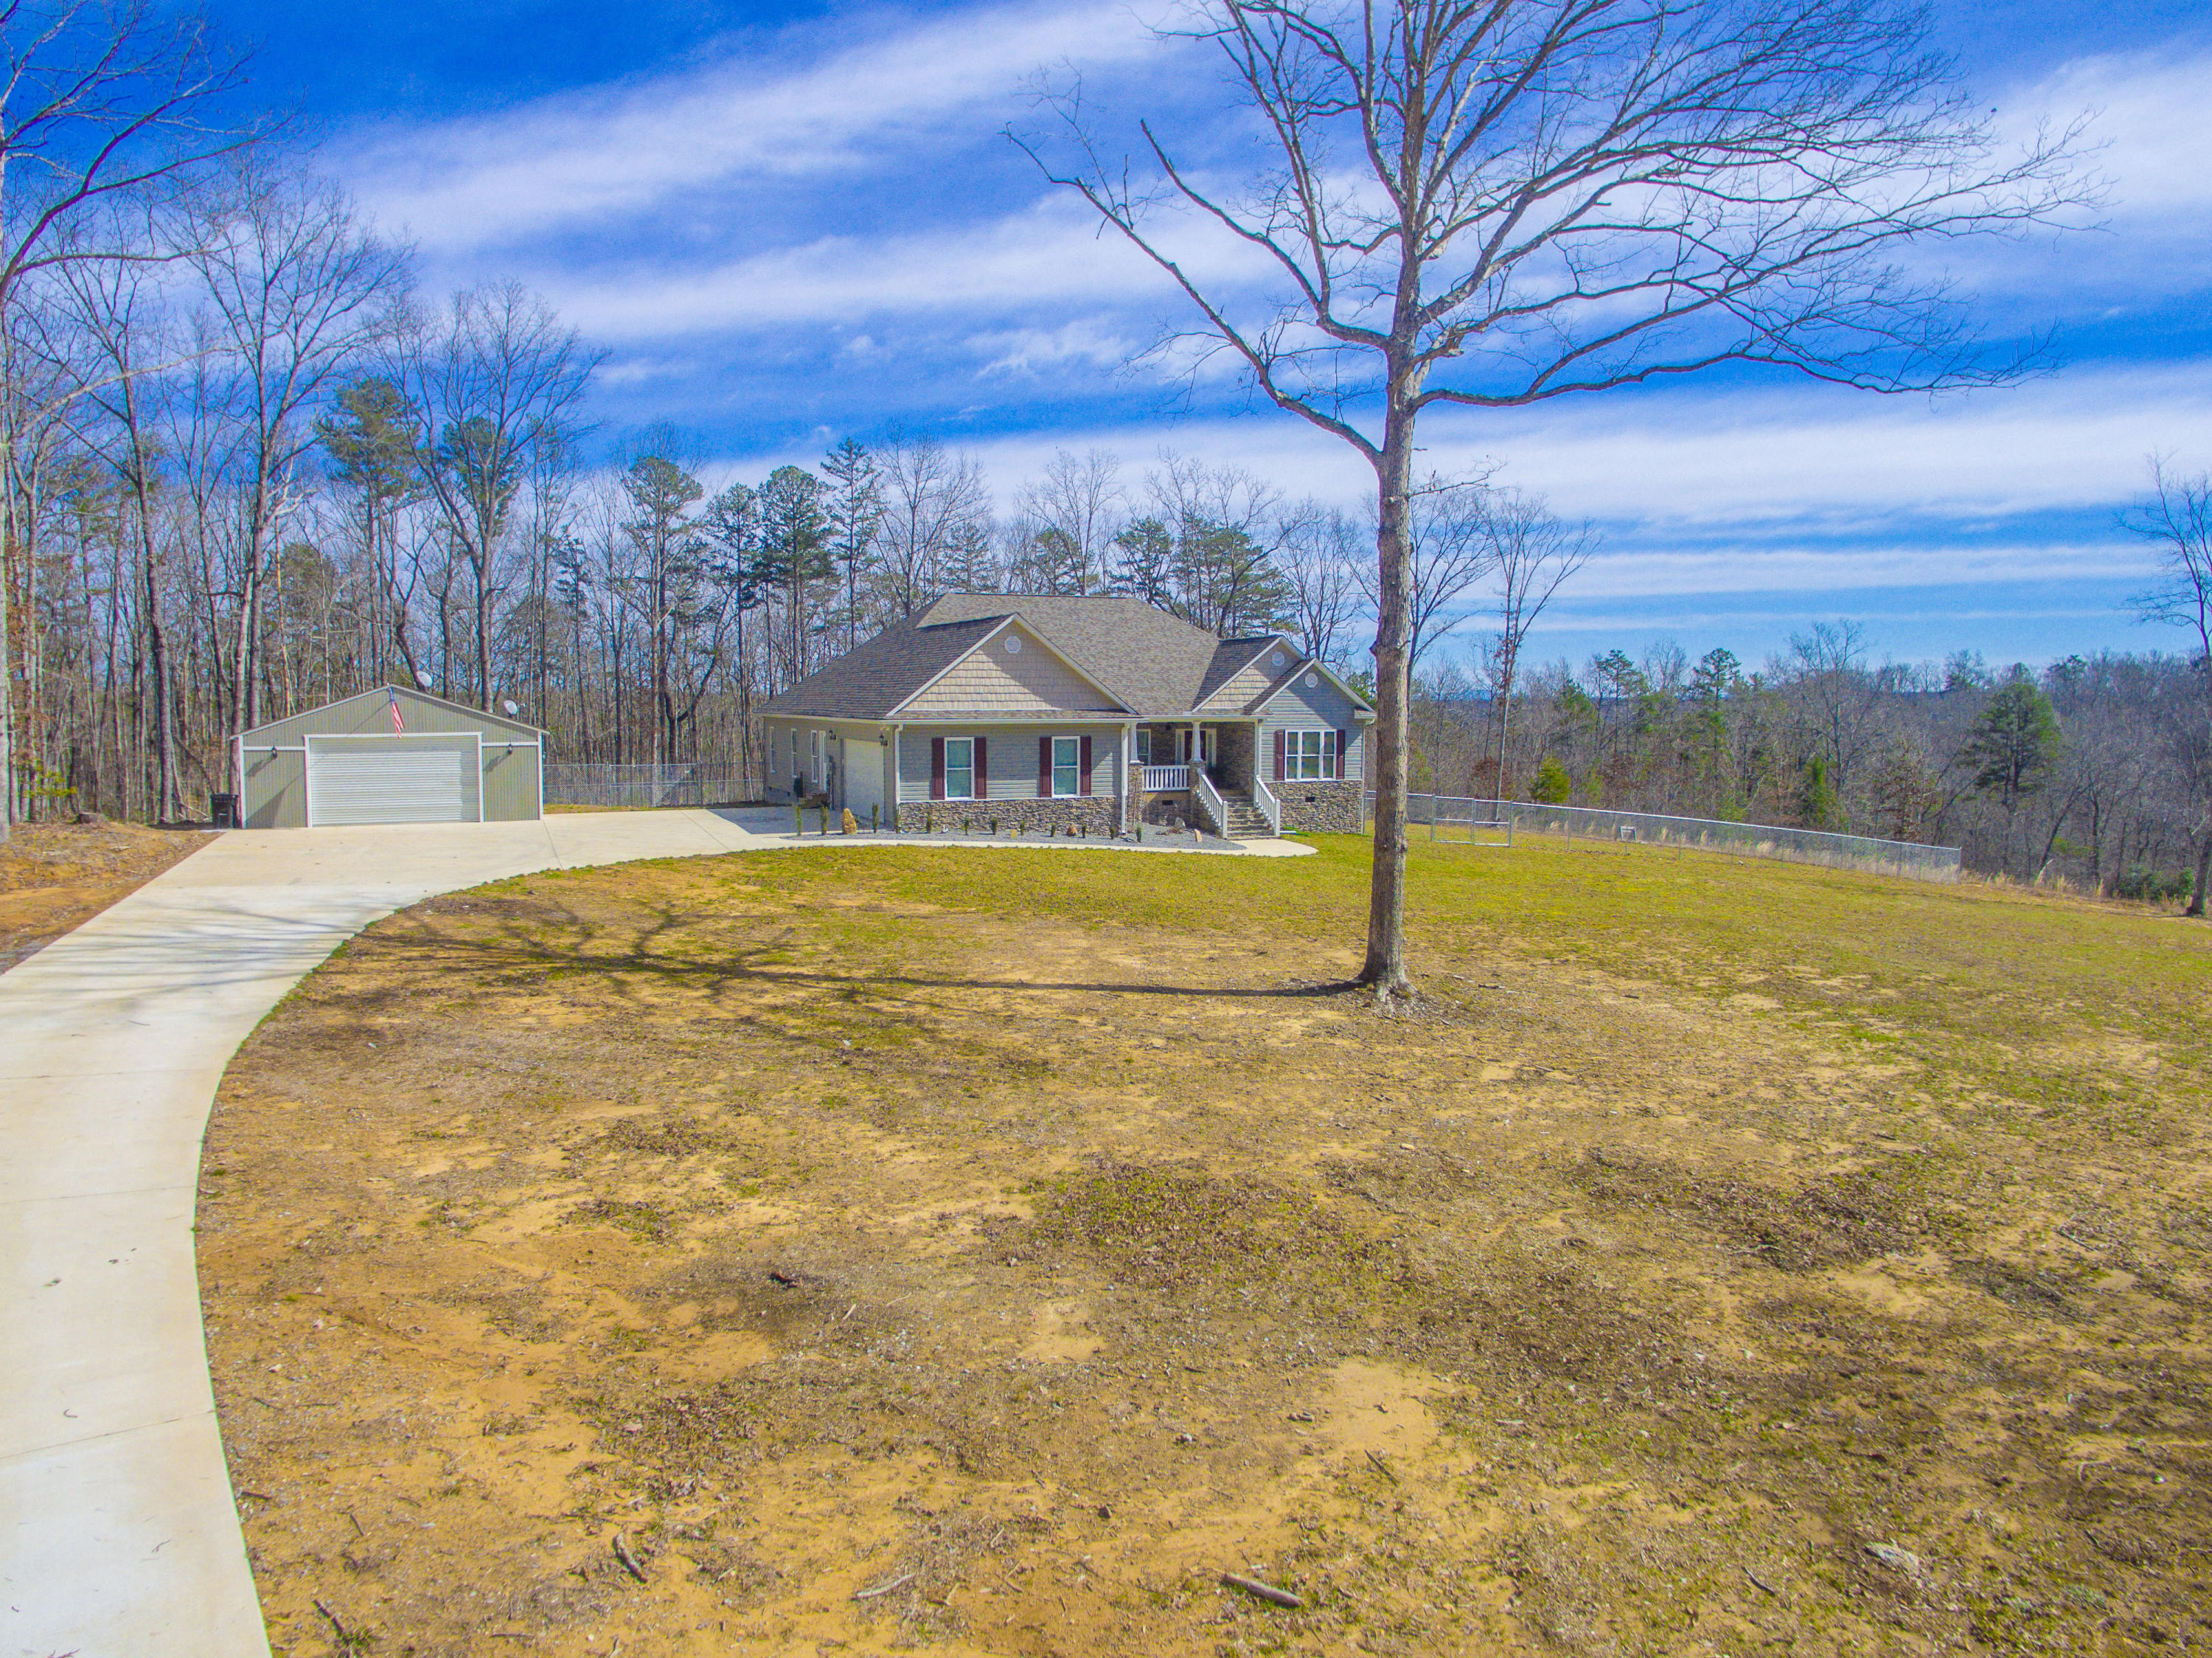 1647 Crowe Cir, Soddy Daisy, TN 37379